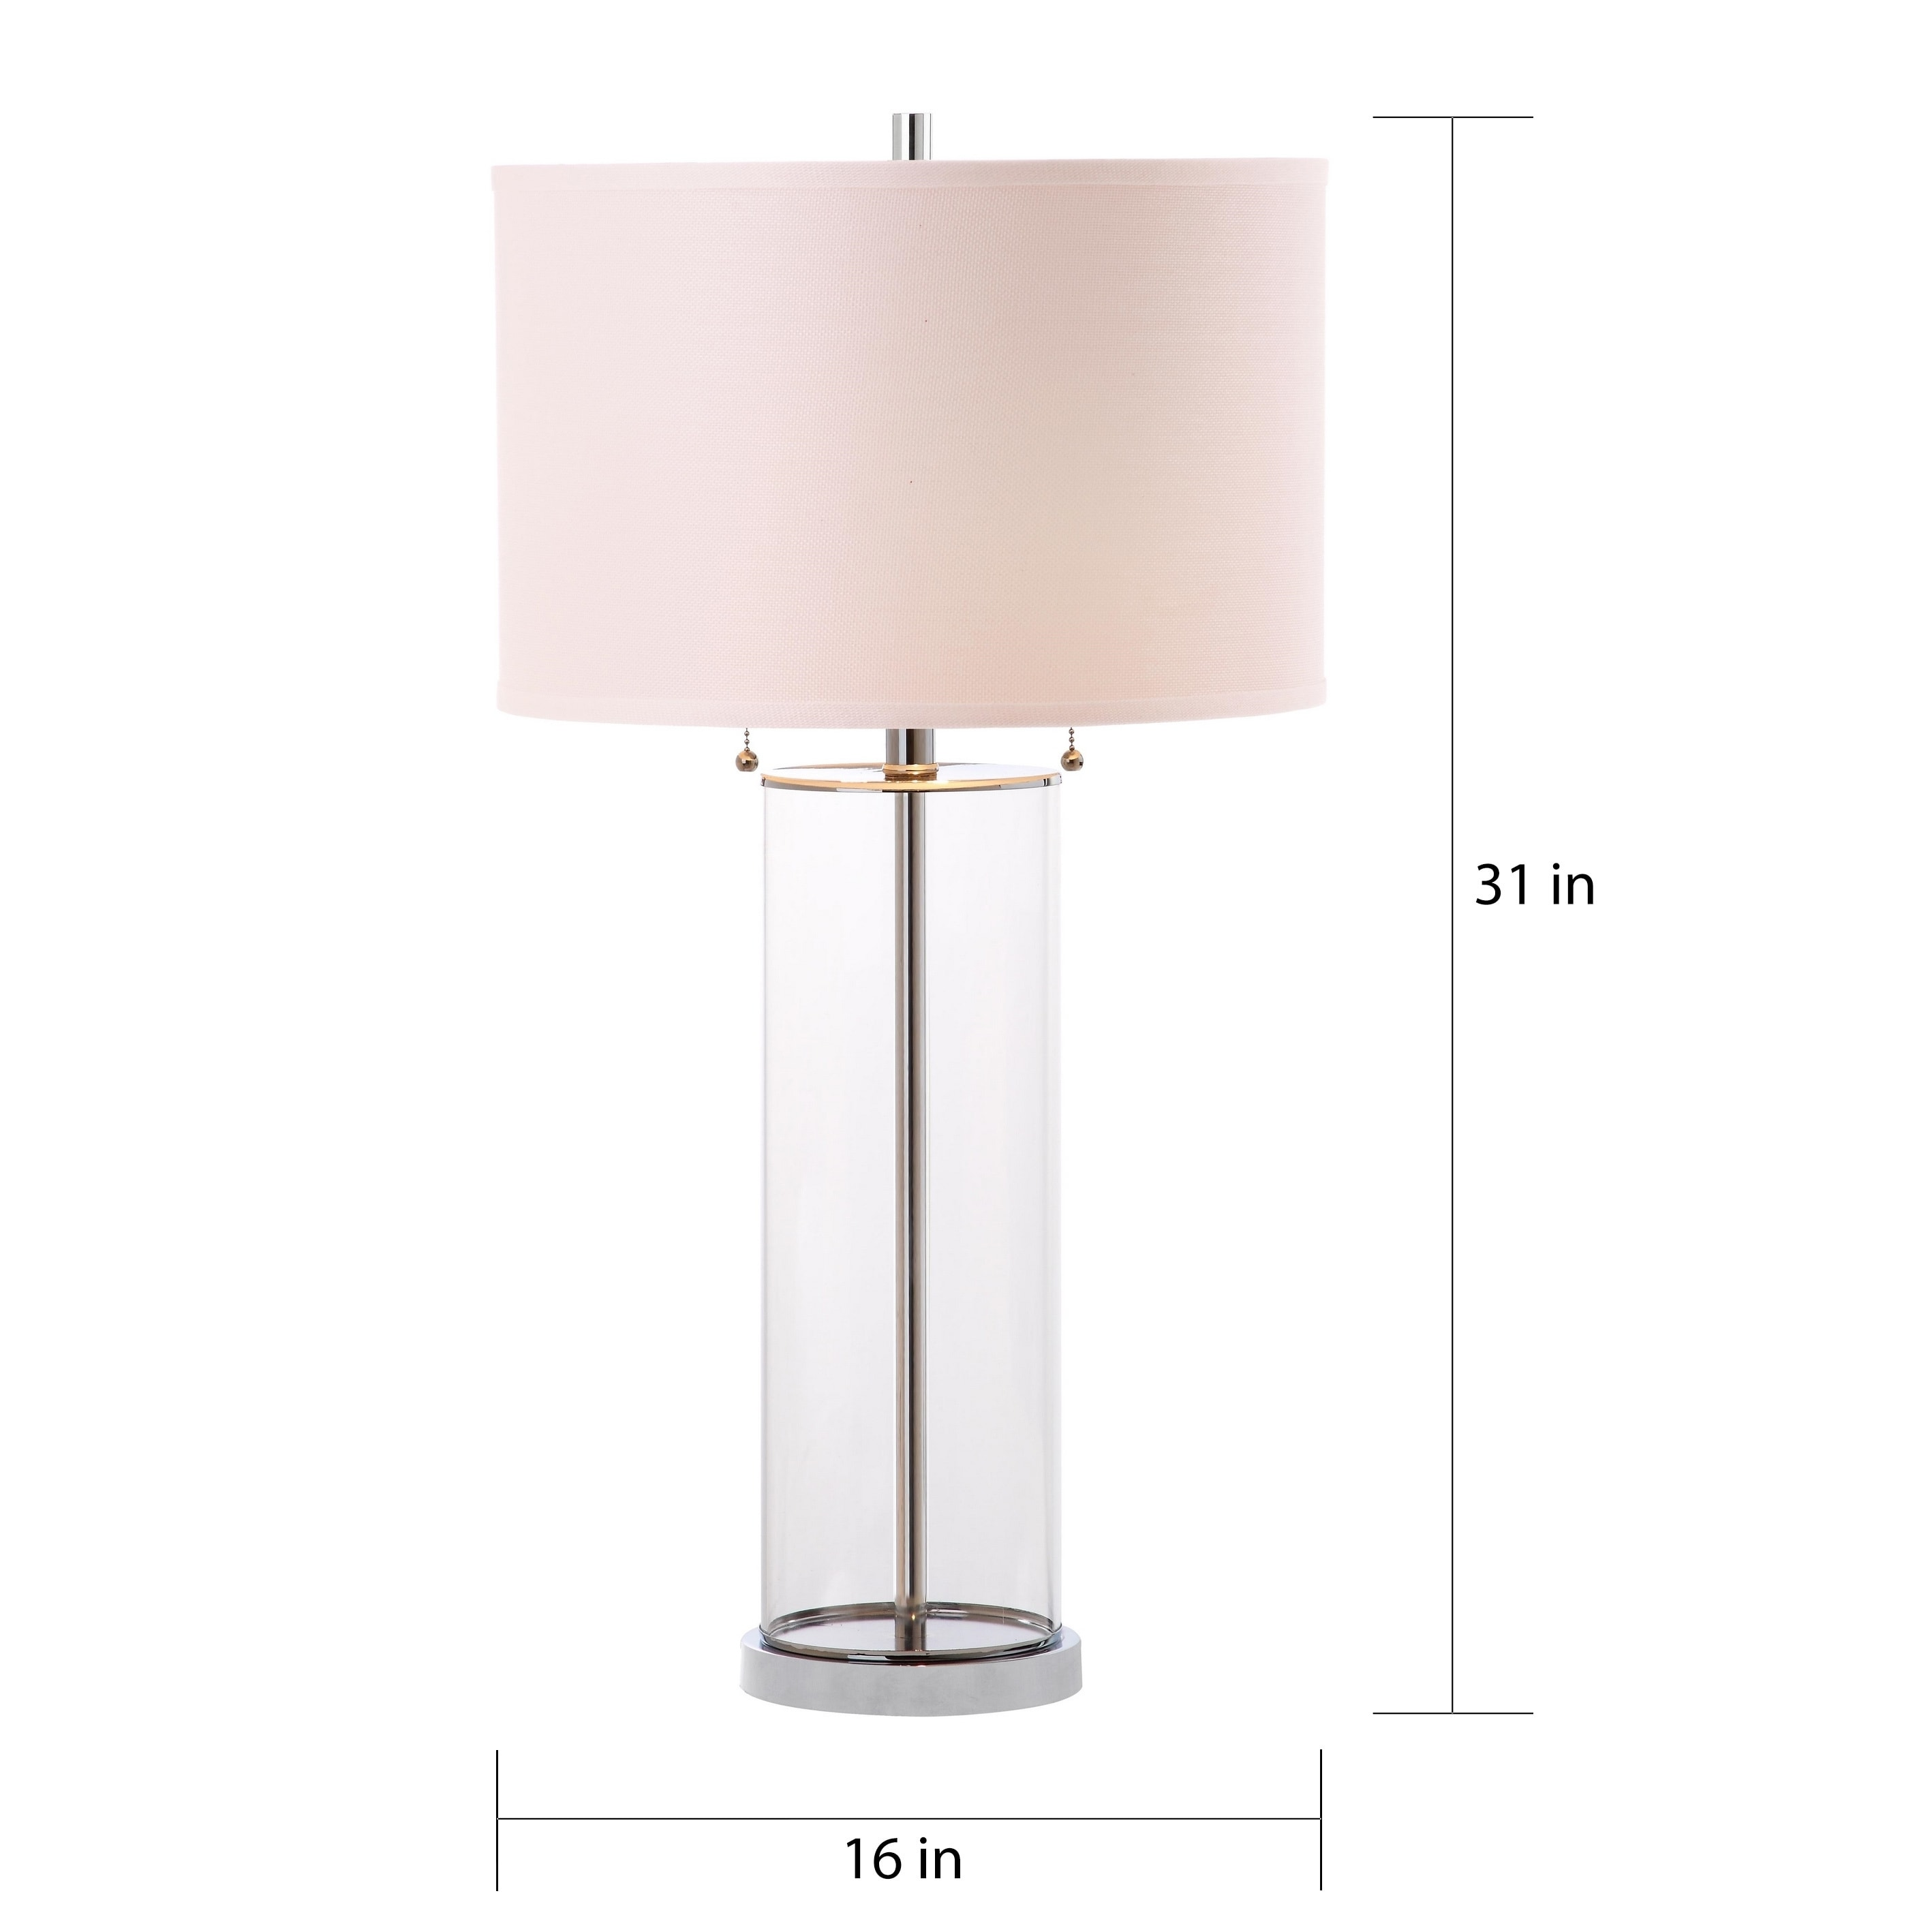 Shop safavieh lighting 31 inch velma clear off white table lamp shop safavieh lighting 31 inch velma clear off white table lamp set of 2 free shipping today overstock 13434465 aloadofball Choice Image